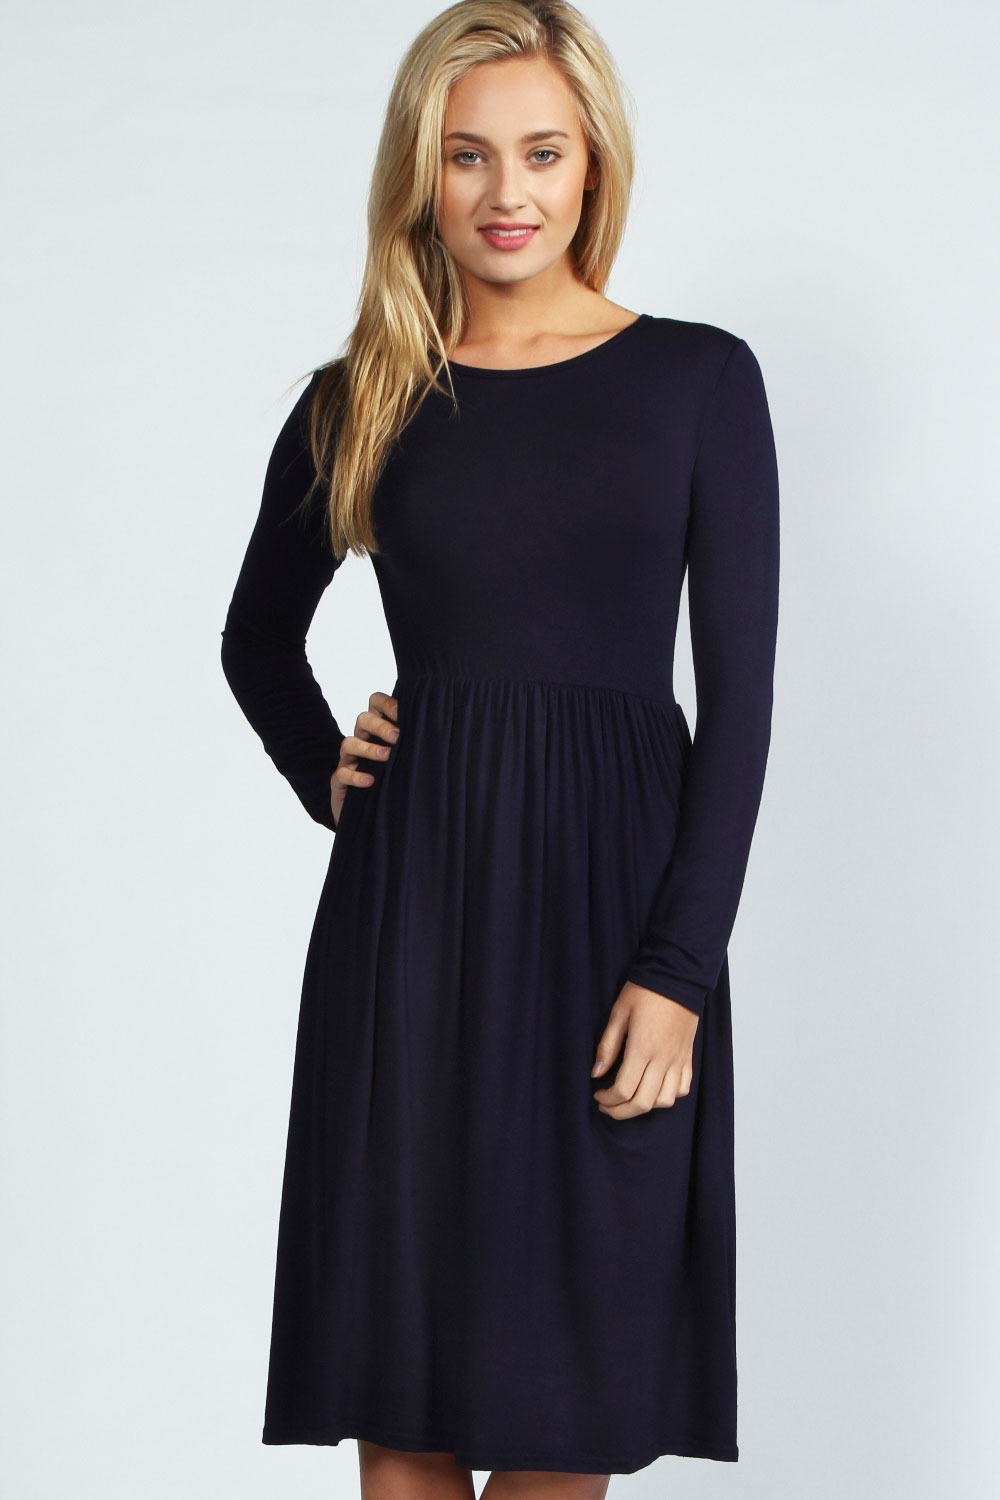 Shop Dillard's selection of women's long-sleeve cocktail dresses for your next special occasion.